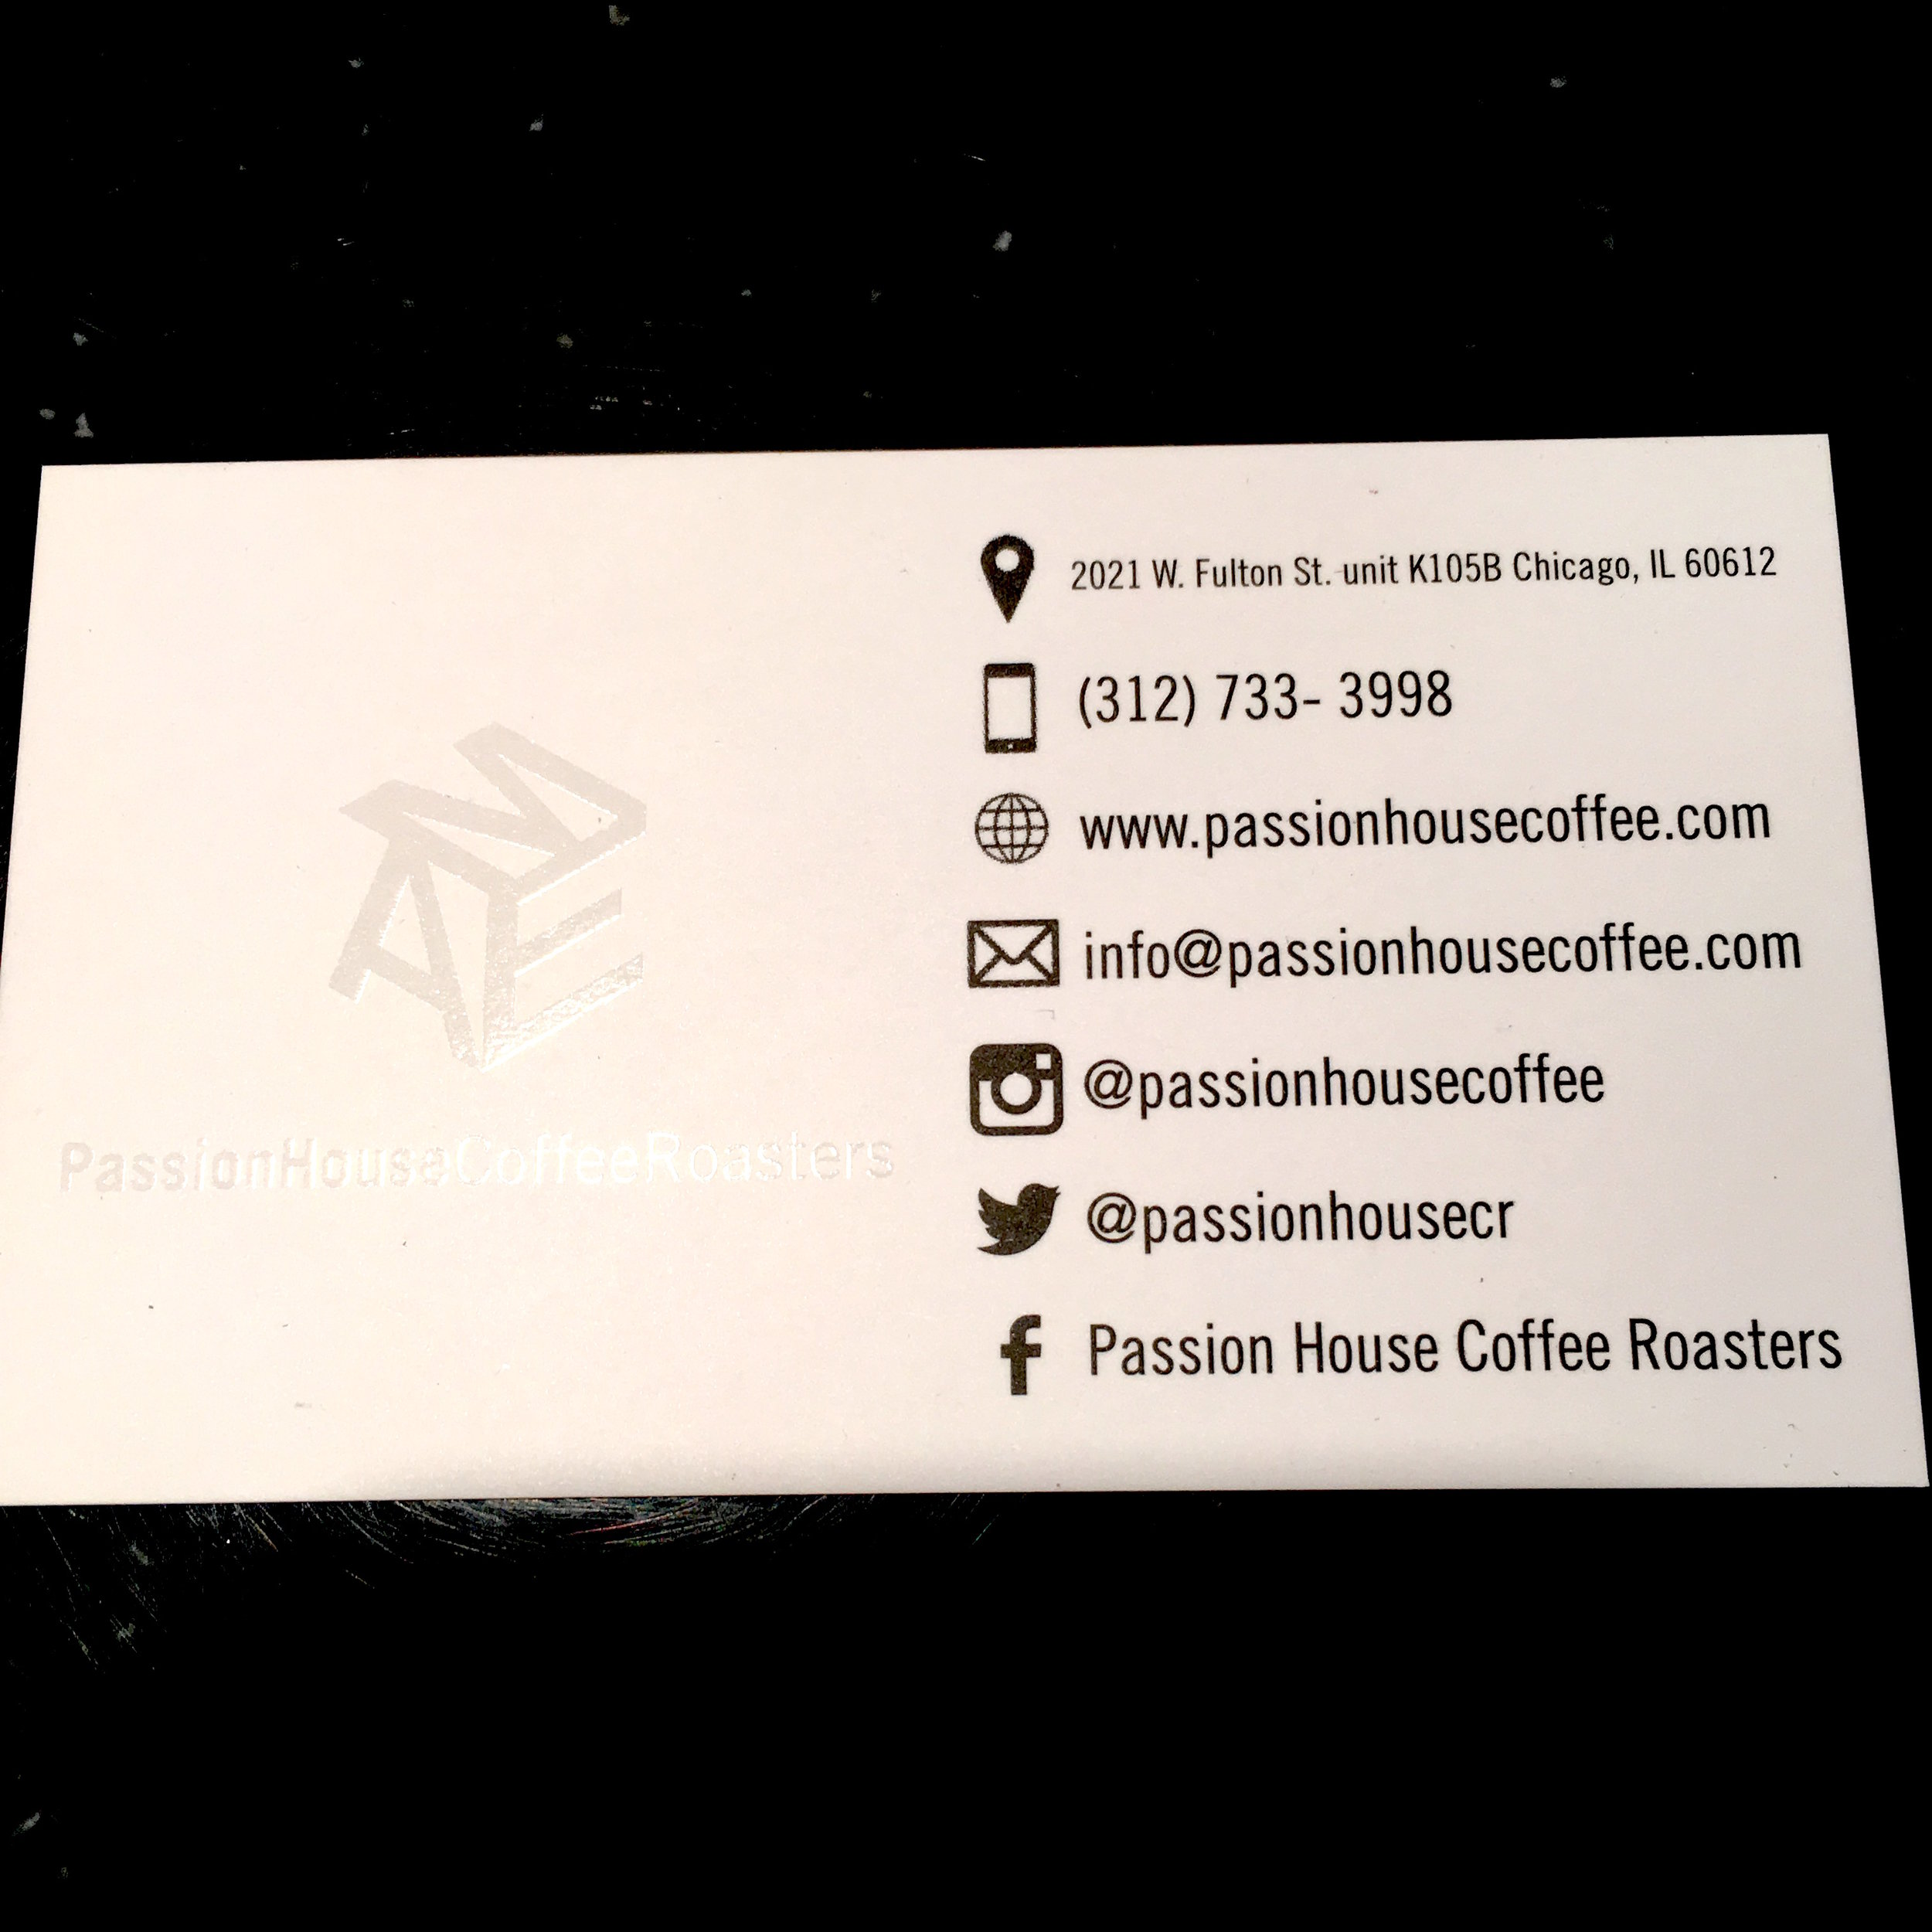 Passion House Coffee Roasters Info